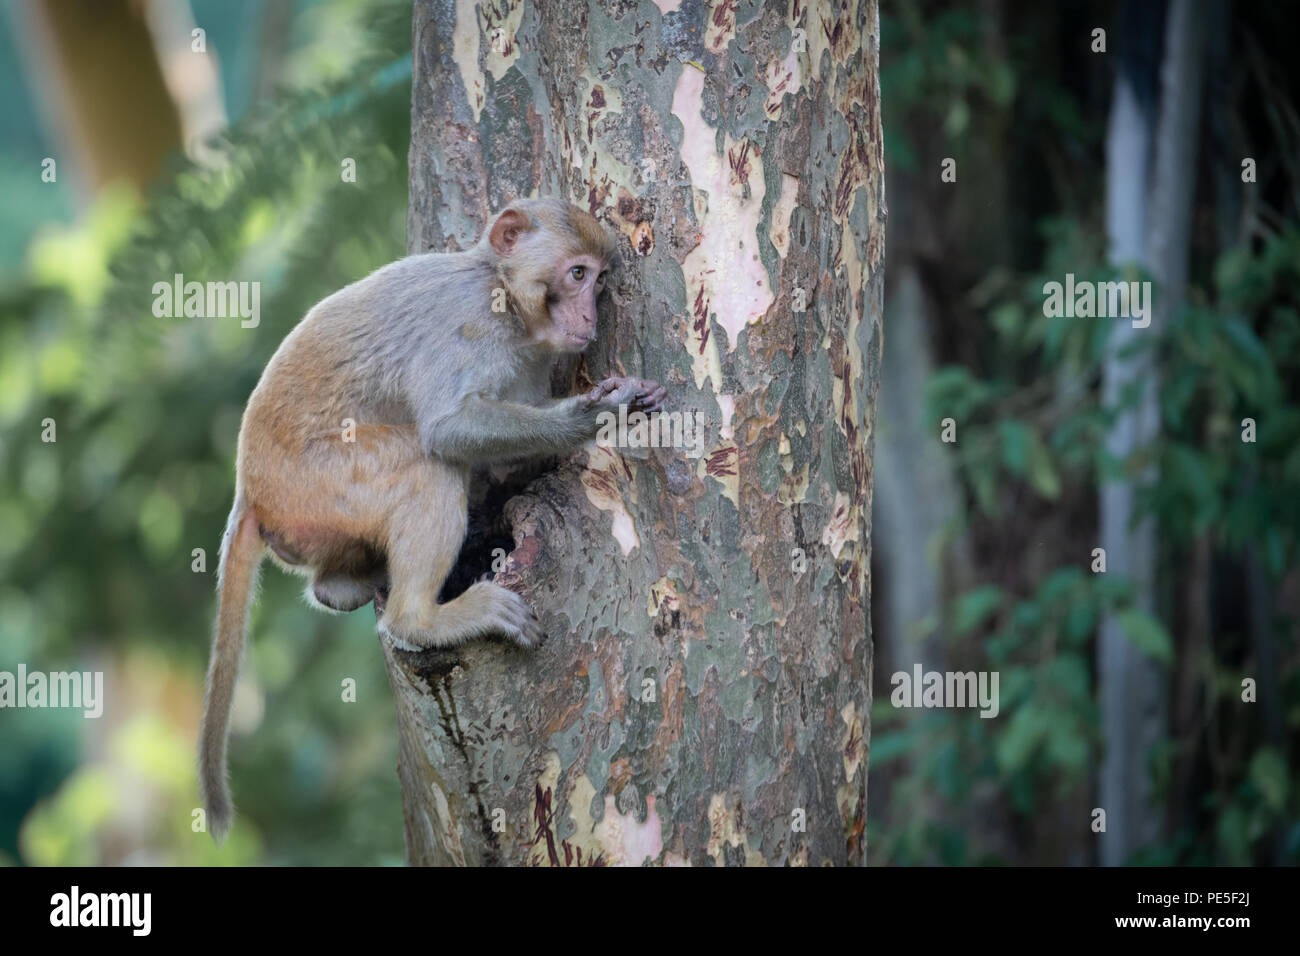 The rhesus macaque (Macaca mulatta) is one of the best-known species of Old World monkeys. It is listed as Least Concern in the IUCN Red List - Stock Image